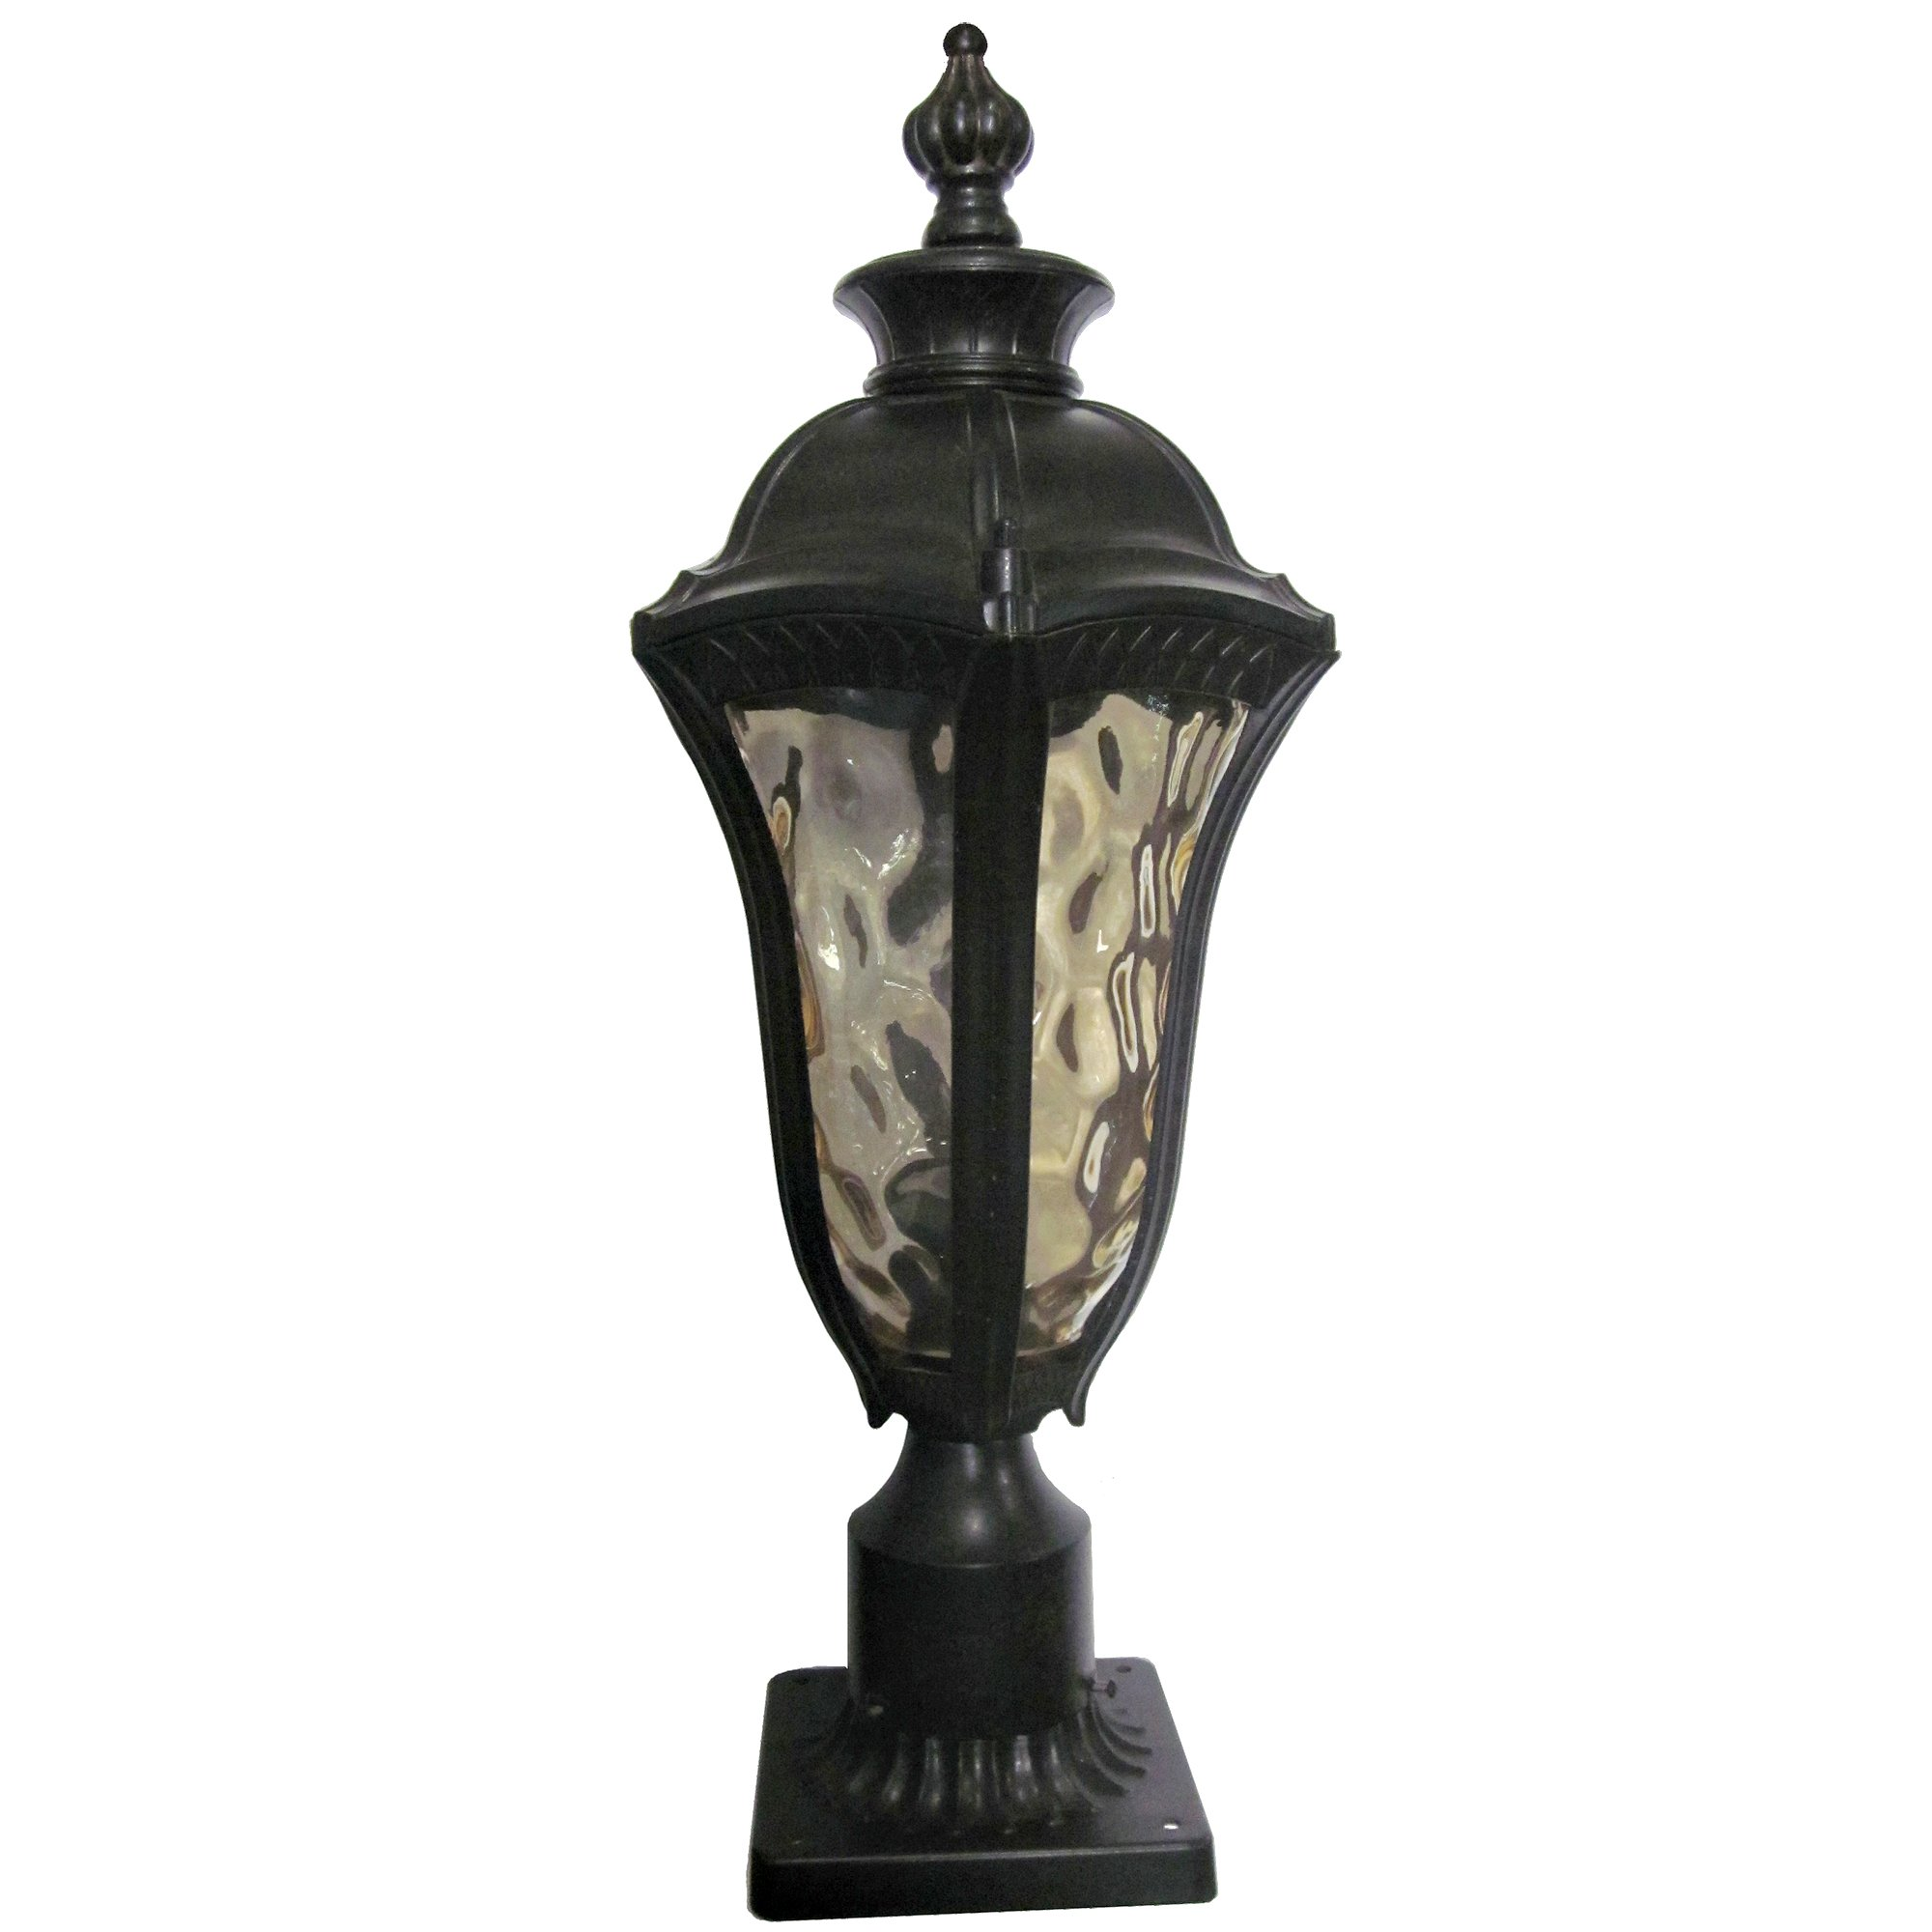 Yosemite Home Decor 326SPIWB Straford 1-Light Outdoor Post Light with Water Glass Shade, Small by Yosemite Home Decor